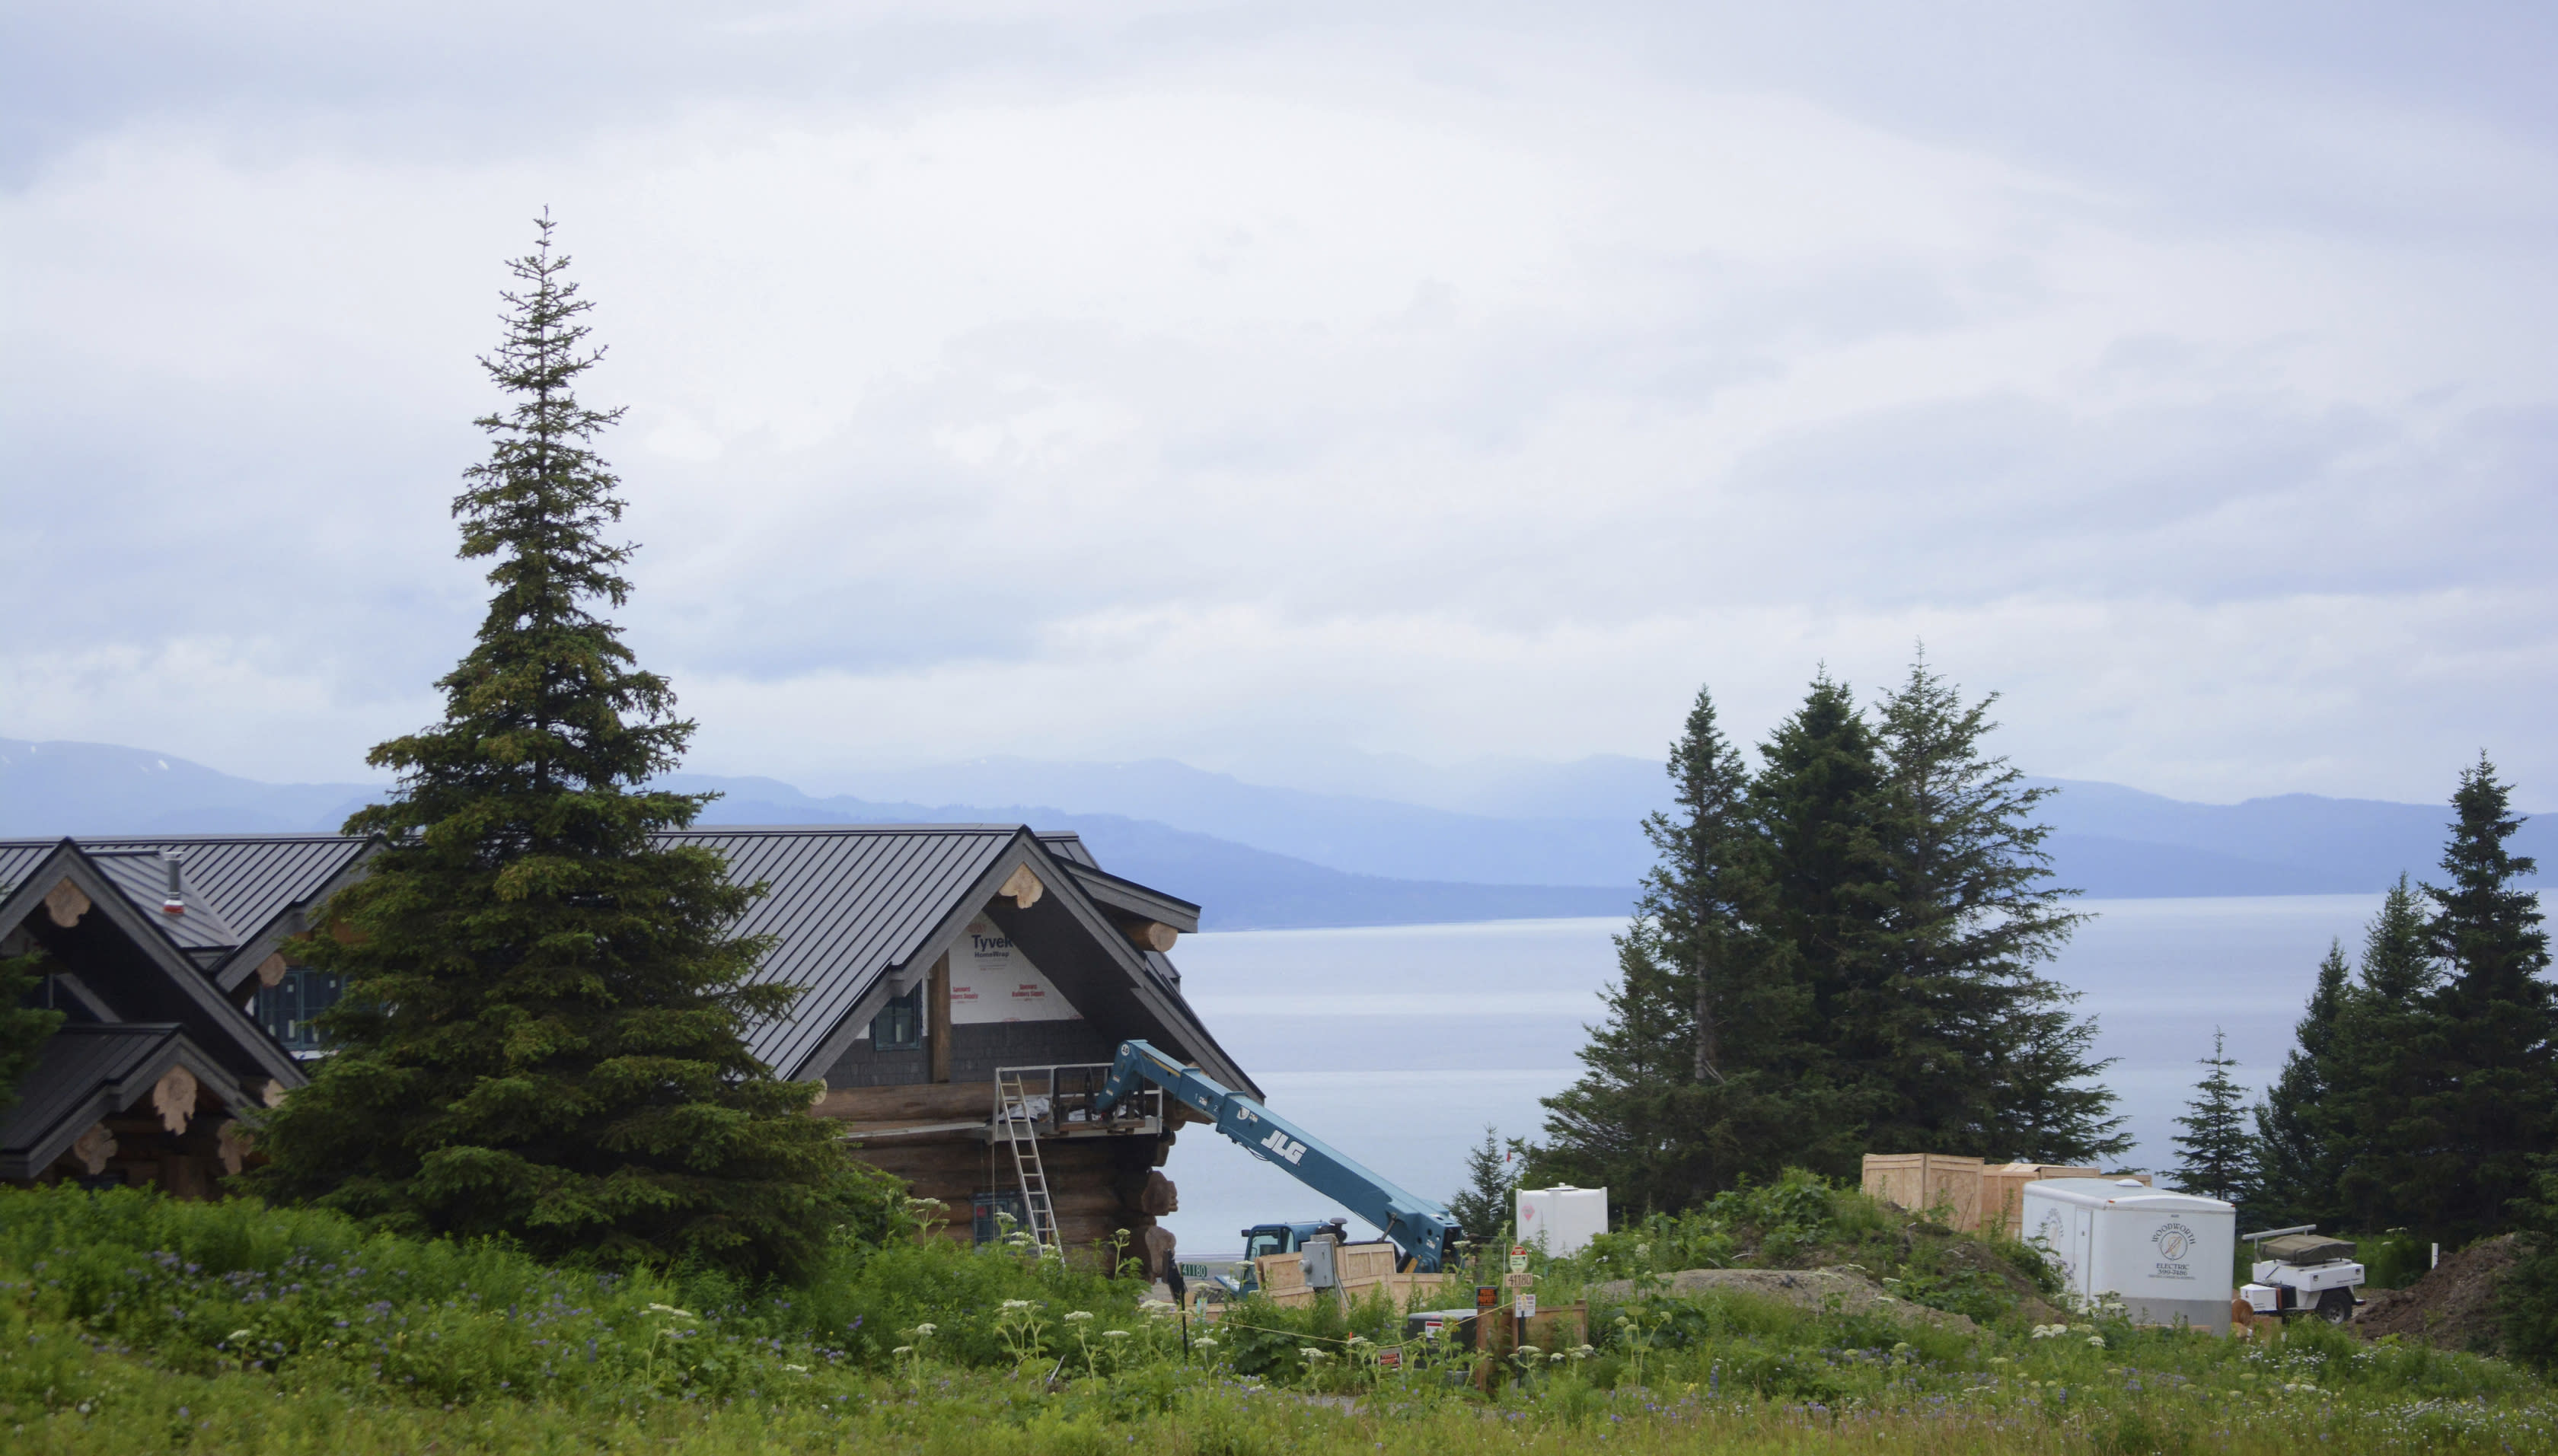 This July 9, 2019 photo shows part of country musician Zac Brown's log home, visible from Dorothy Drive overlooking Kachemak Bay in Homer, Alaska. Brown has lost a bid to limit public access to his property. Brown had asked the Kenai Peninsula Borough Planning Commission to remove easements allowing the access along his property in hills above Homer, a small city on Kachemak Bay on Alaska's Kenai Peninsula, KSRM-AM reported Tuesday, Aug. 13, 2019. The commission voted 5-4 against Brown's request Monday following more than two hours of public testimony. (Michael Armstrong/Homer News via AP)